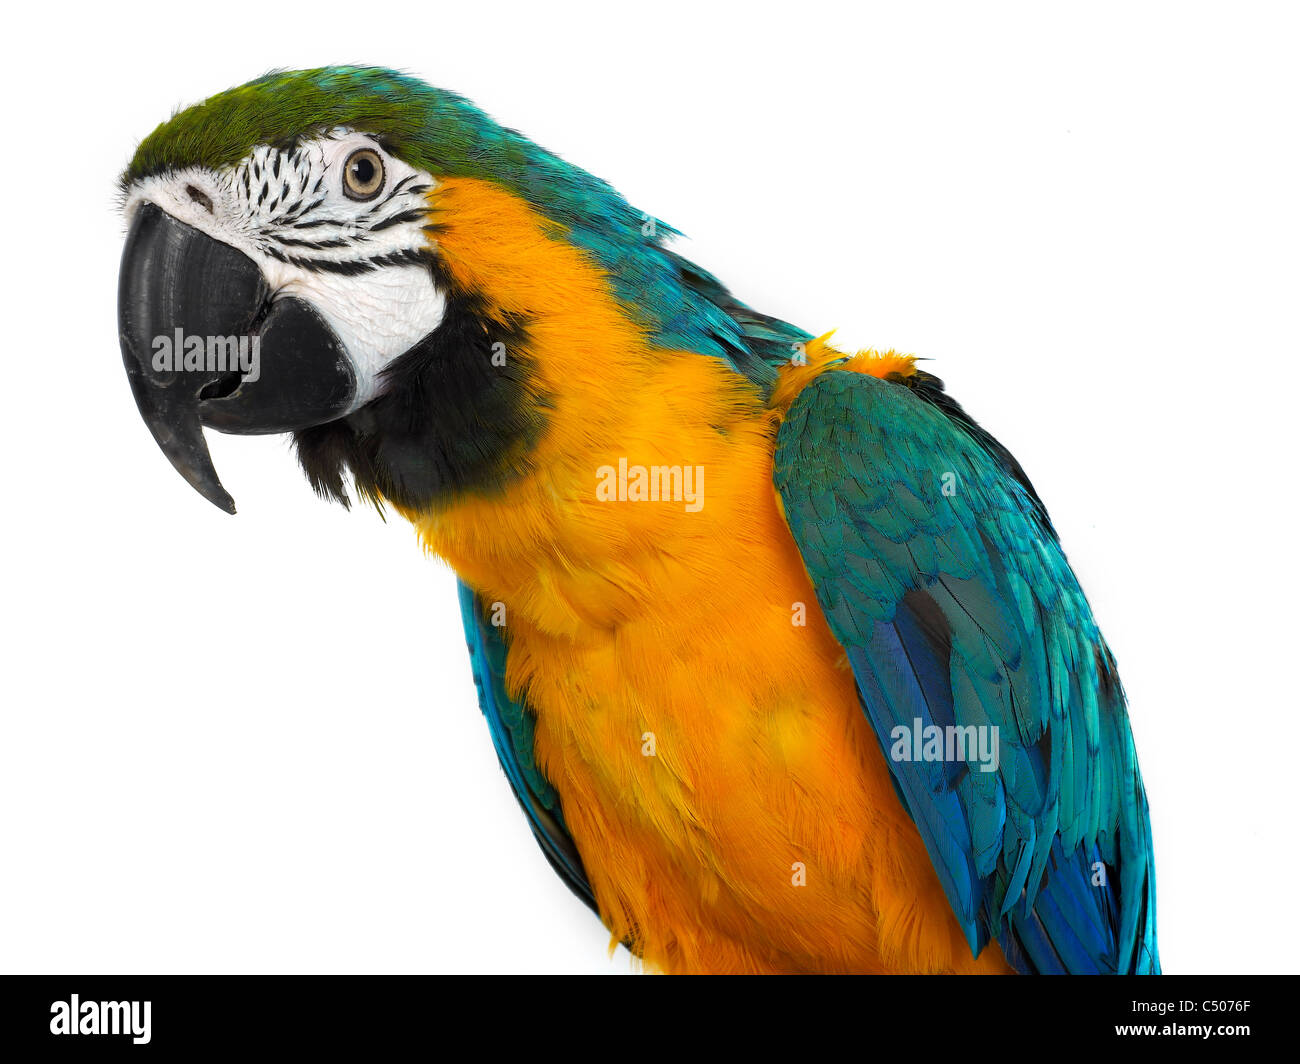 A portrait of a macaw, a new world parrot. - Stock Image